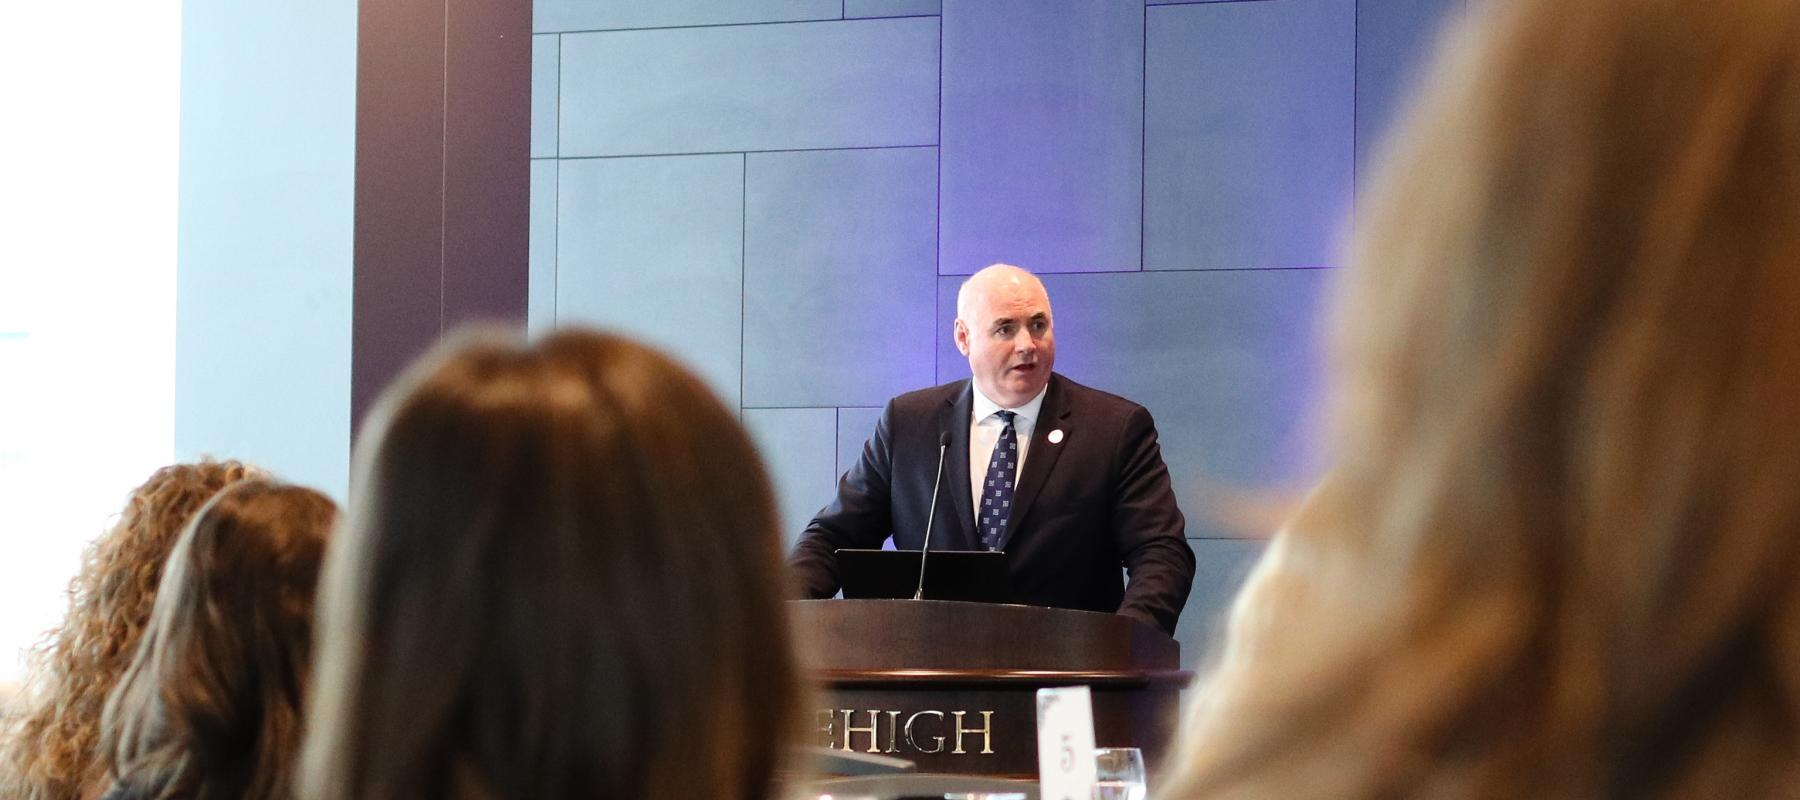 Kevin Cassiday, director of the International Labour Organization Office for the United States, speaks at Lehigh University